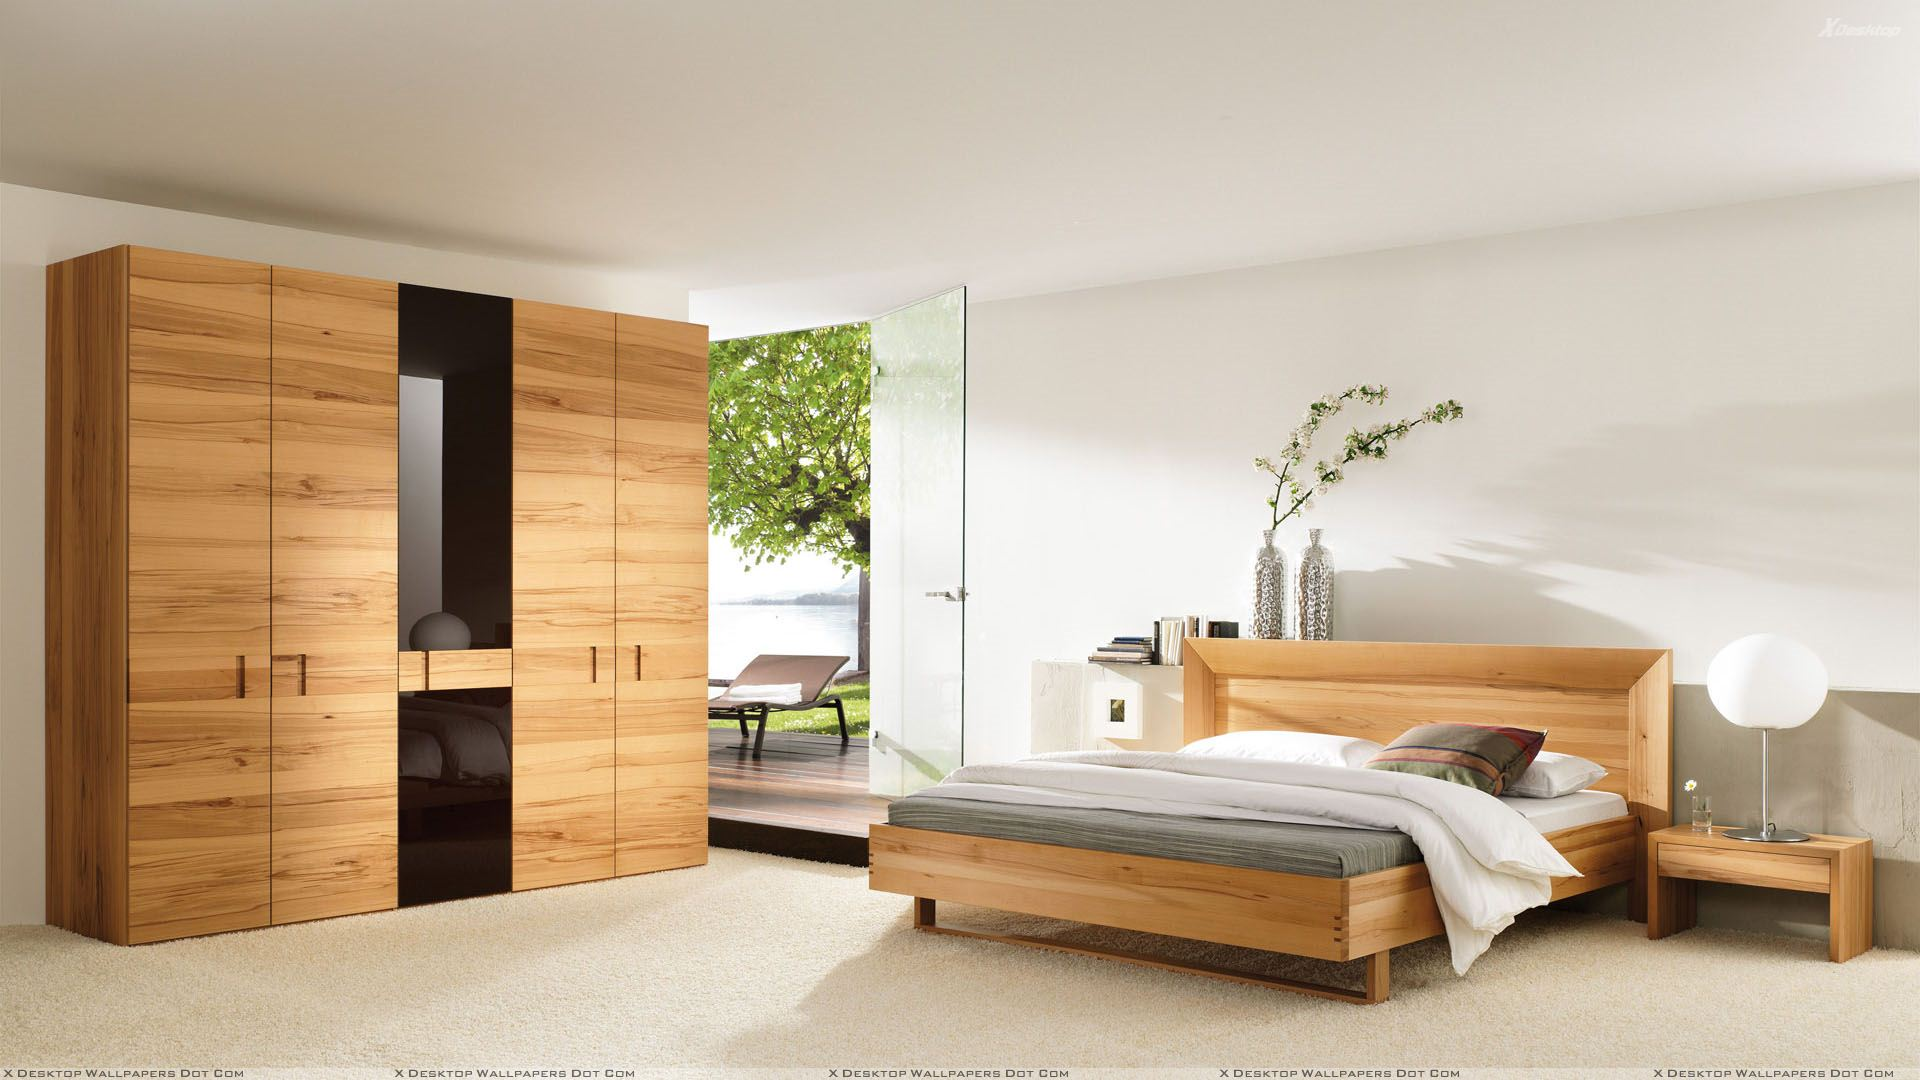 Wooden furniture and bed in bedroom wallpaper for Furniture and beds